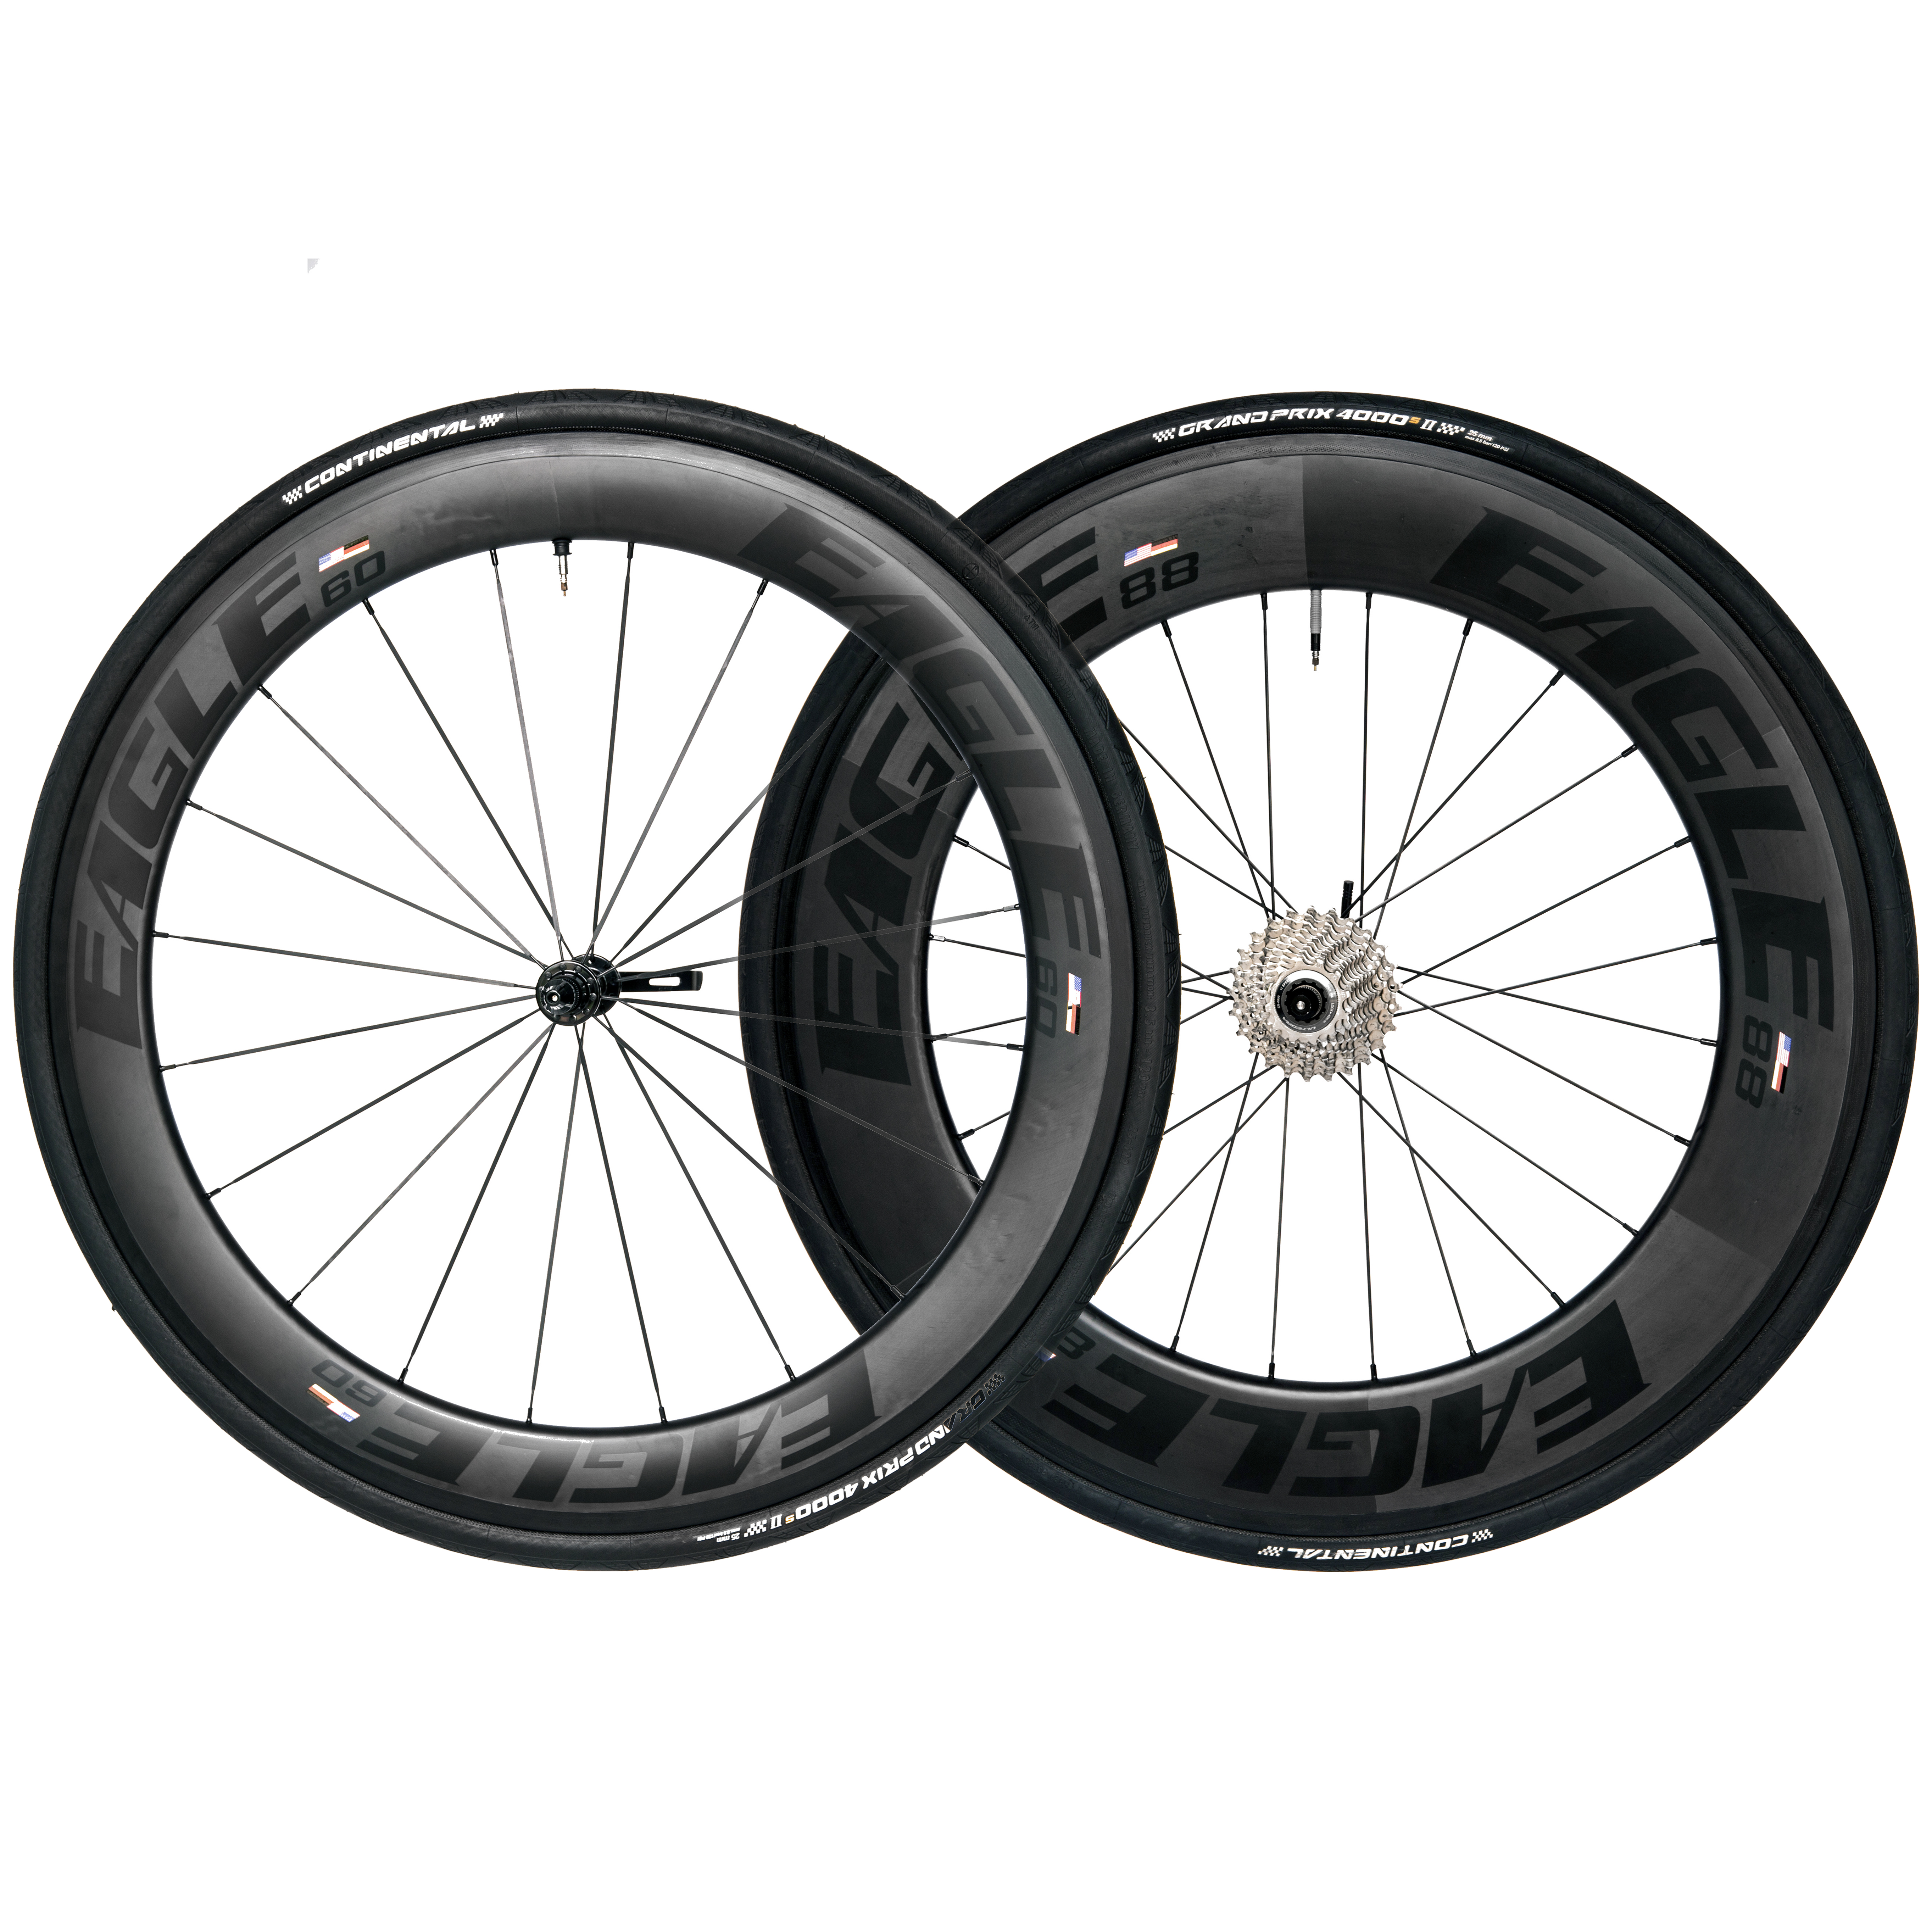 Eagle 68/88 Carbon Fiber Clincher Wheels - Triathlon/Time Trial